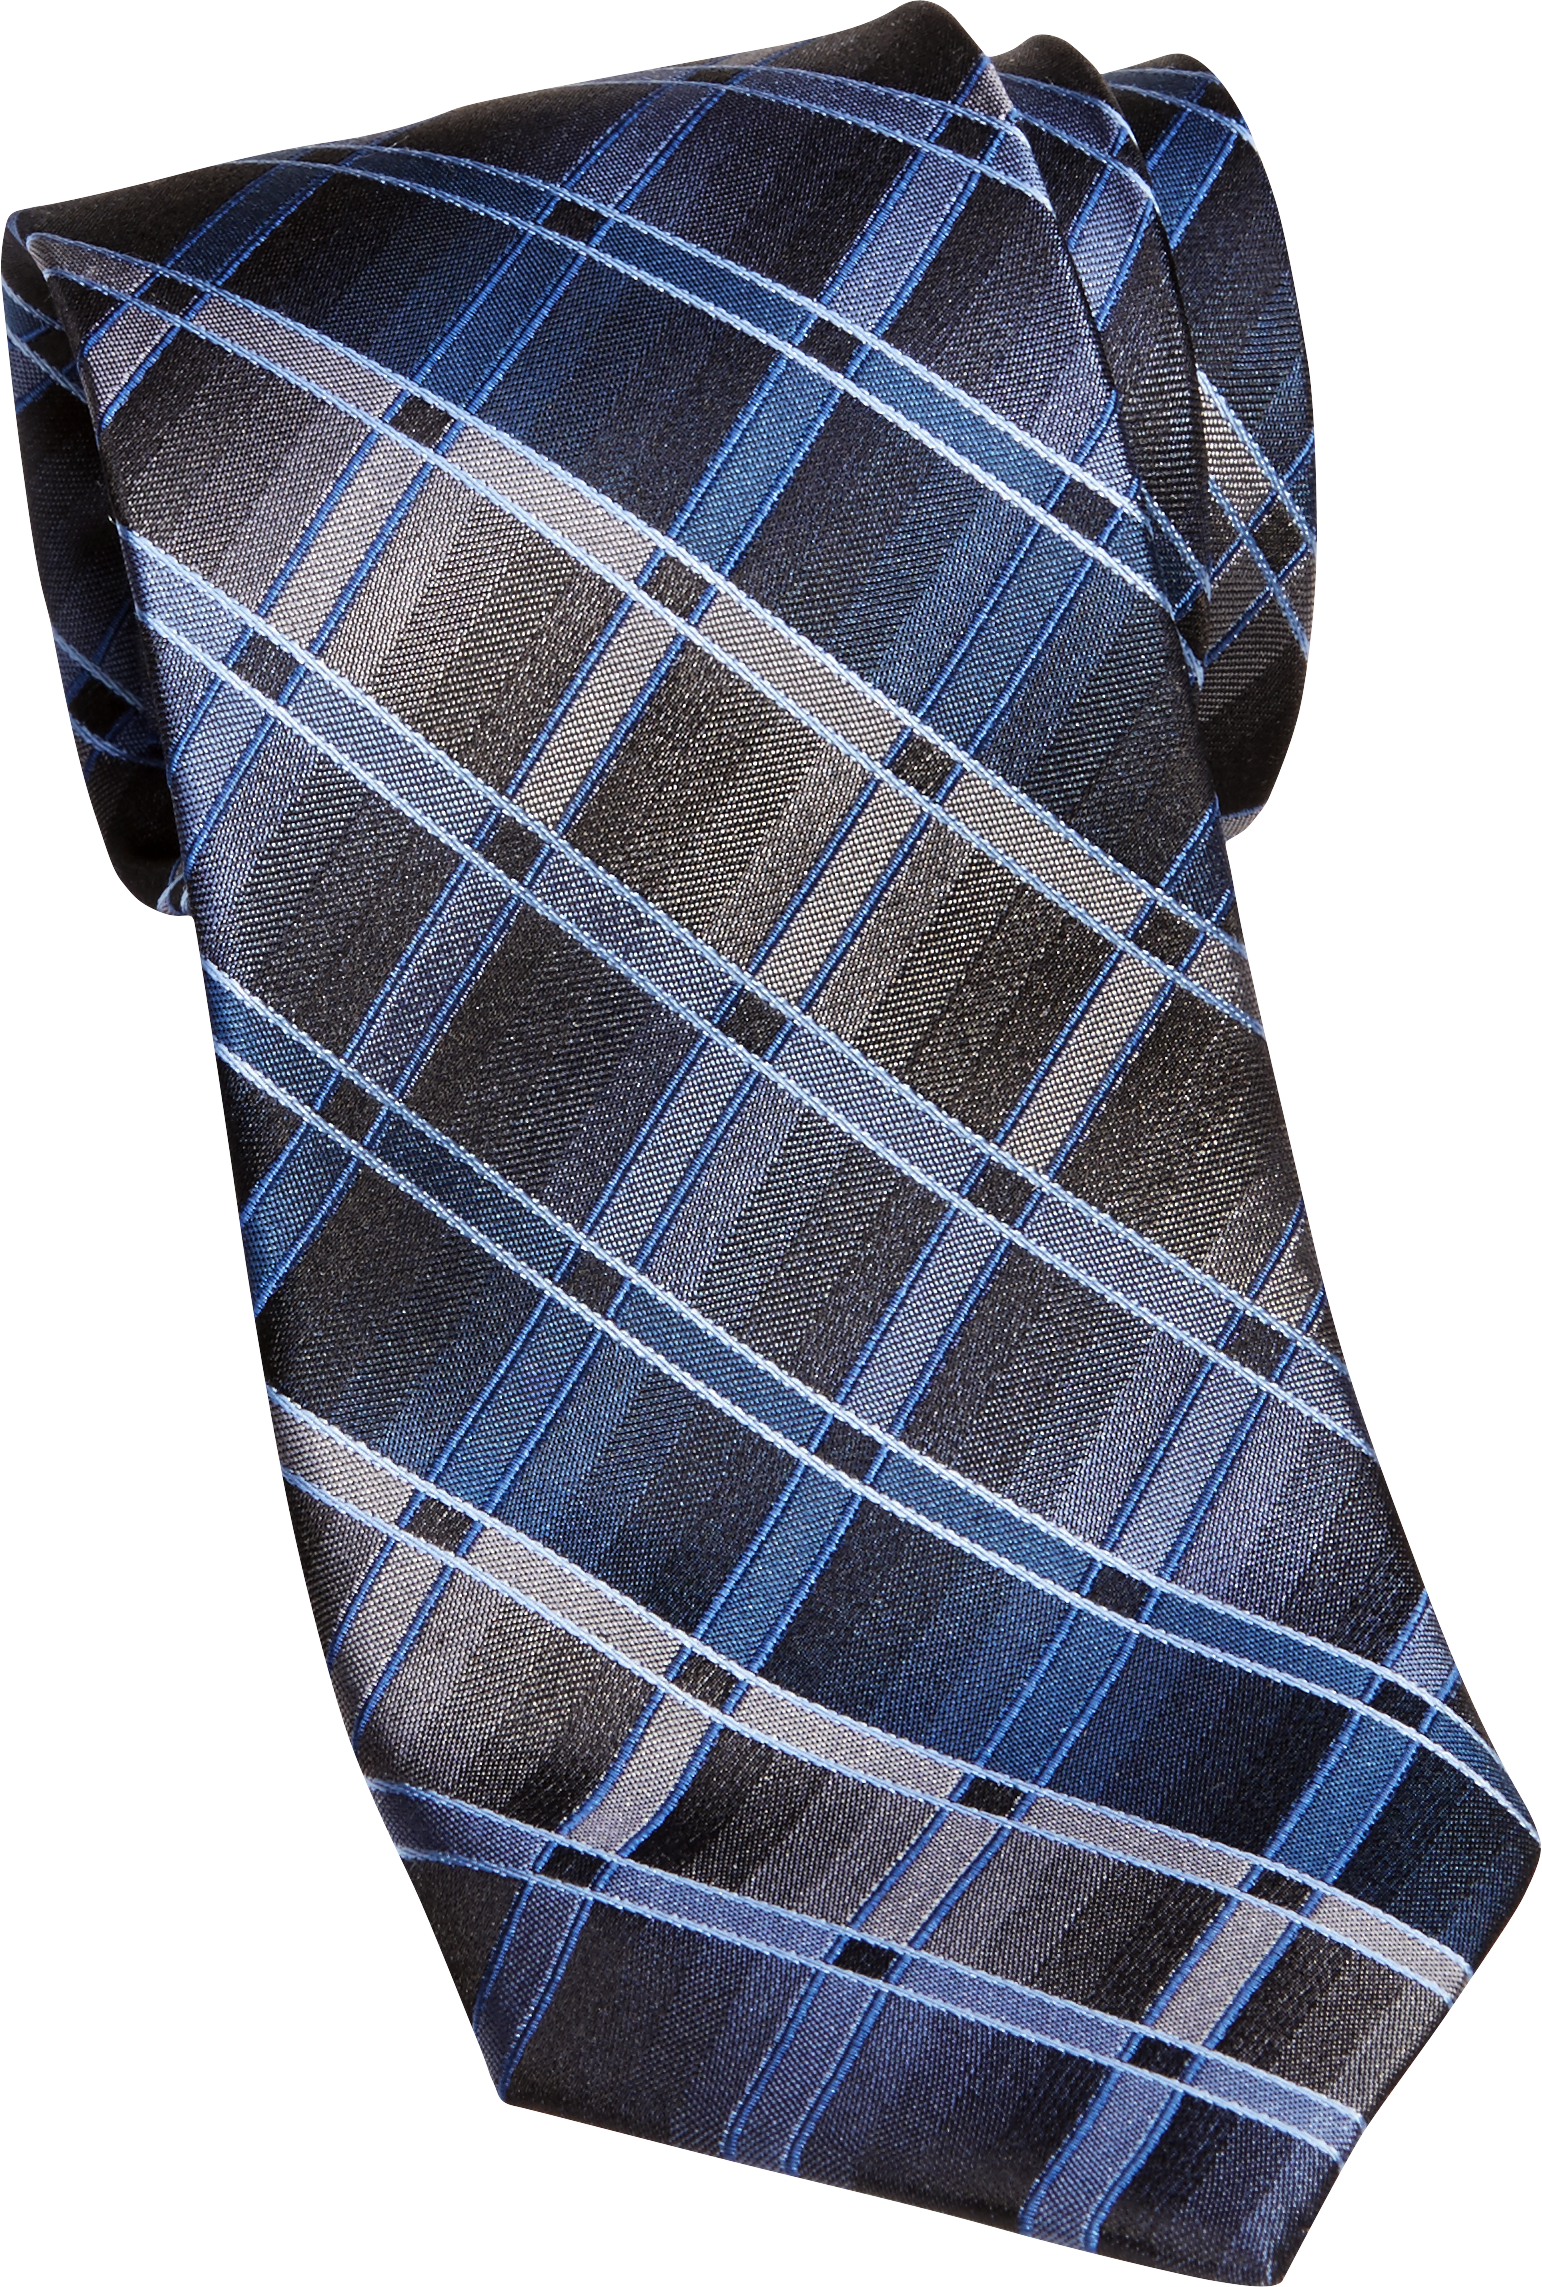 Pronto Uomo Blue Diamond Check Narrow Tie (Blue)